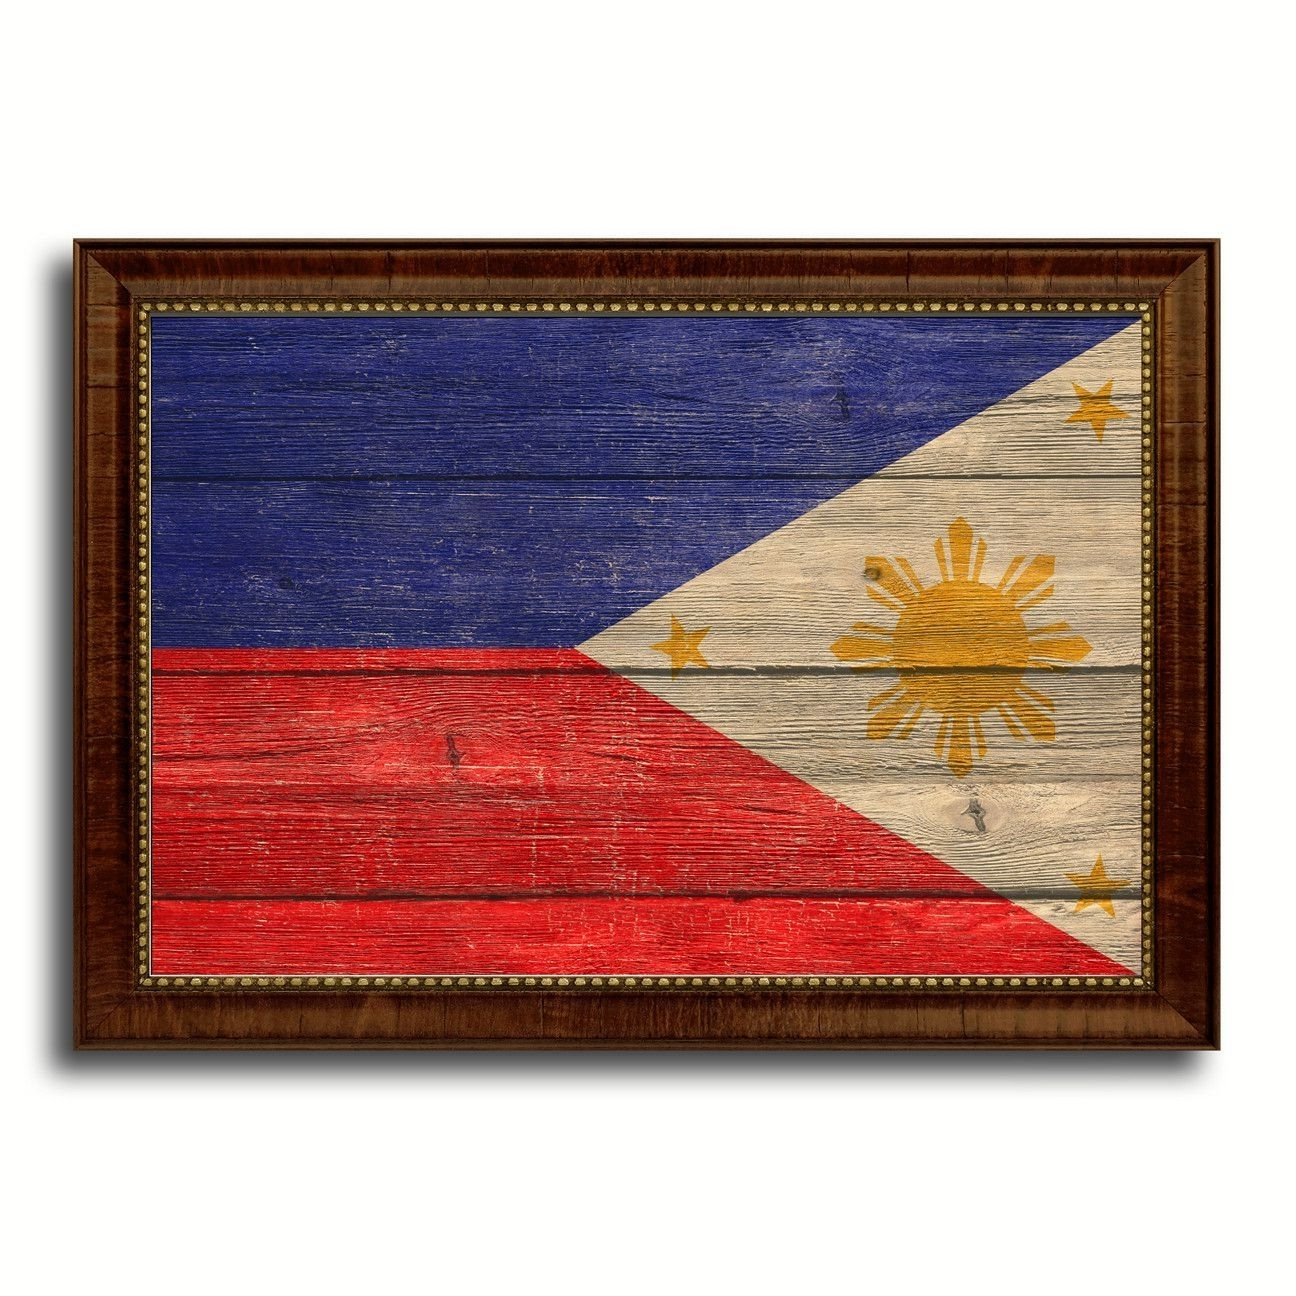 Philippines Country Flag Texture Canvas Print With Brown Custom Pertaining To Famous Canvas Wall Art Of Philippines (View 13 of 15)